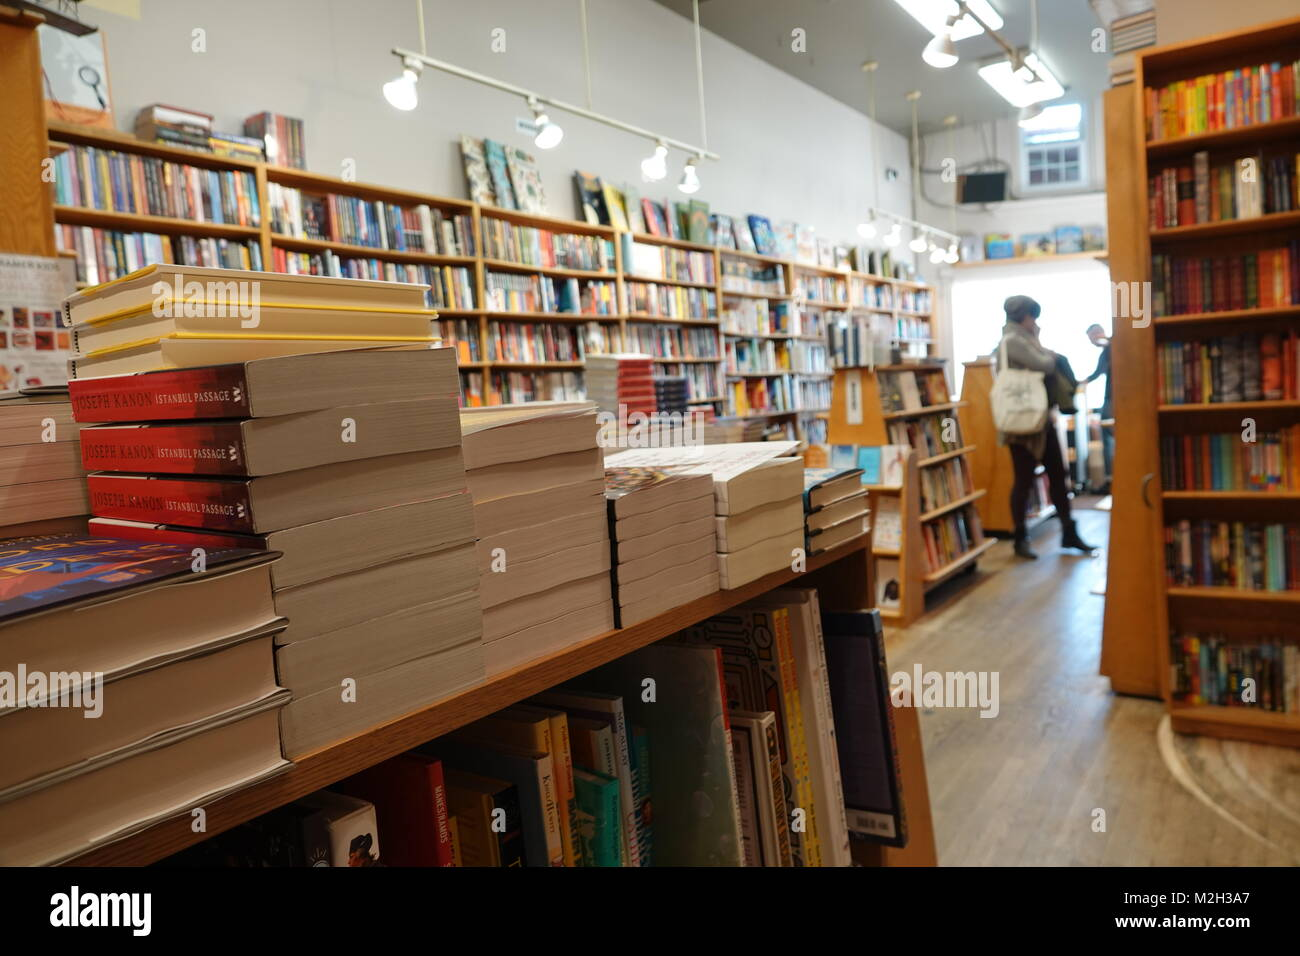 USA Washington DC Books bookstore Kramer Books and Afterwords political and liberal book seller - Stock Image